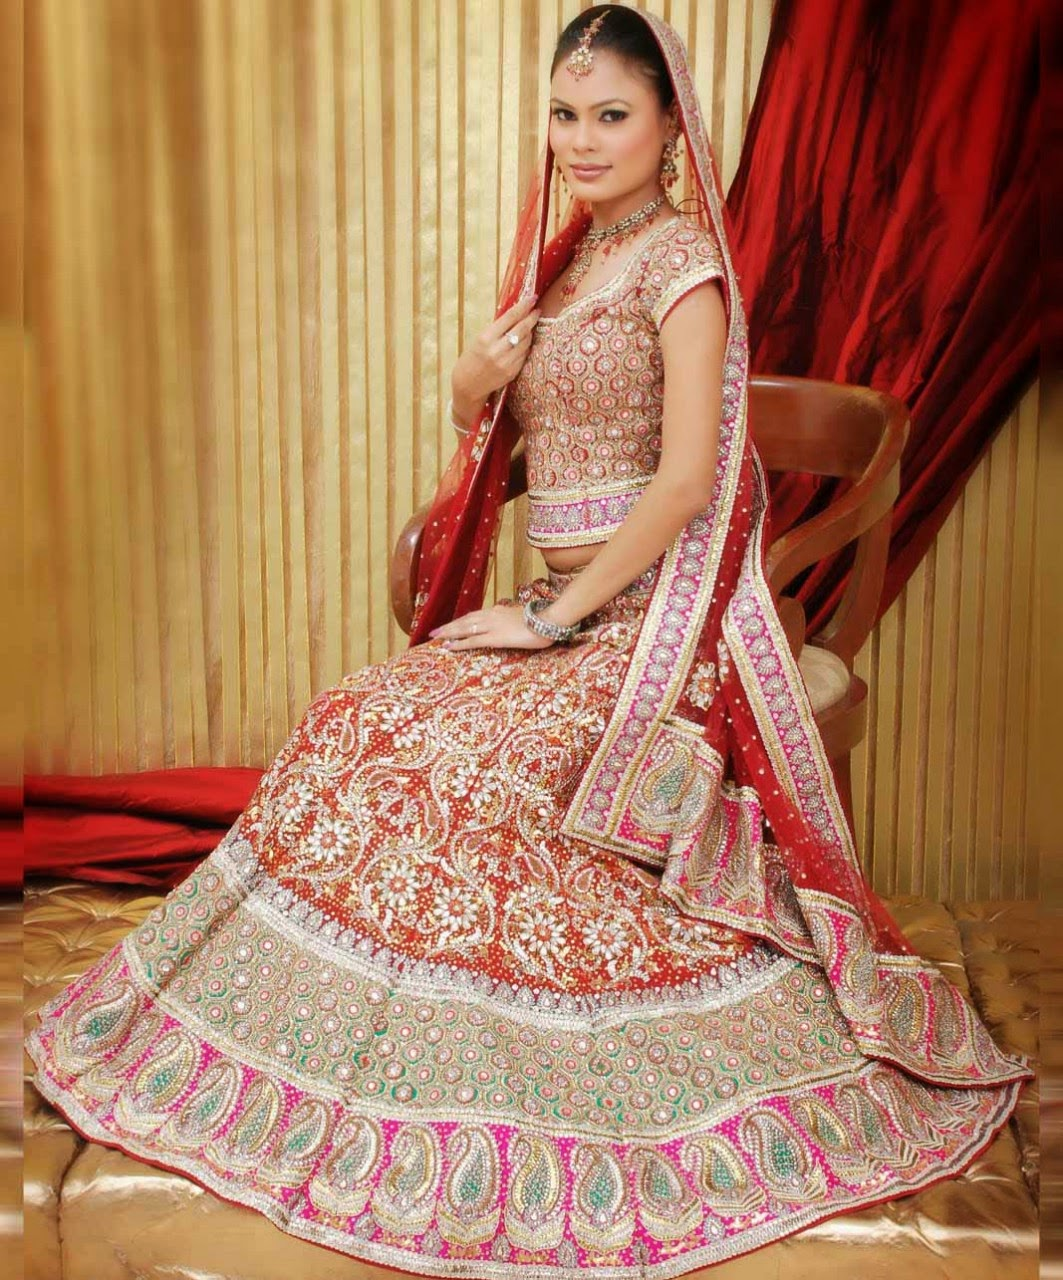 Latest Wedding Gowns 2014: FURQAN LATEST DRESSES FOR WEDDING : June 2014